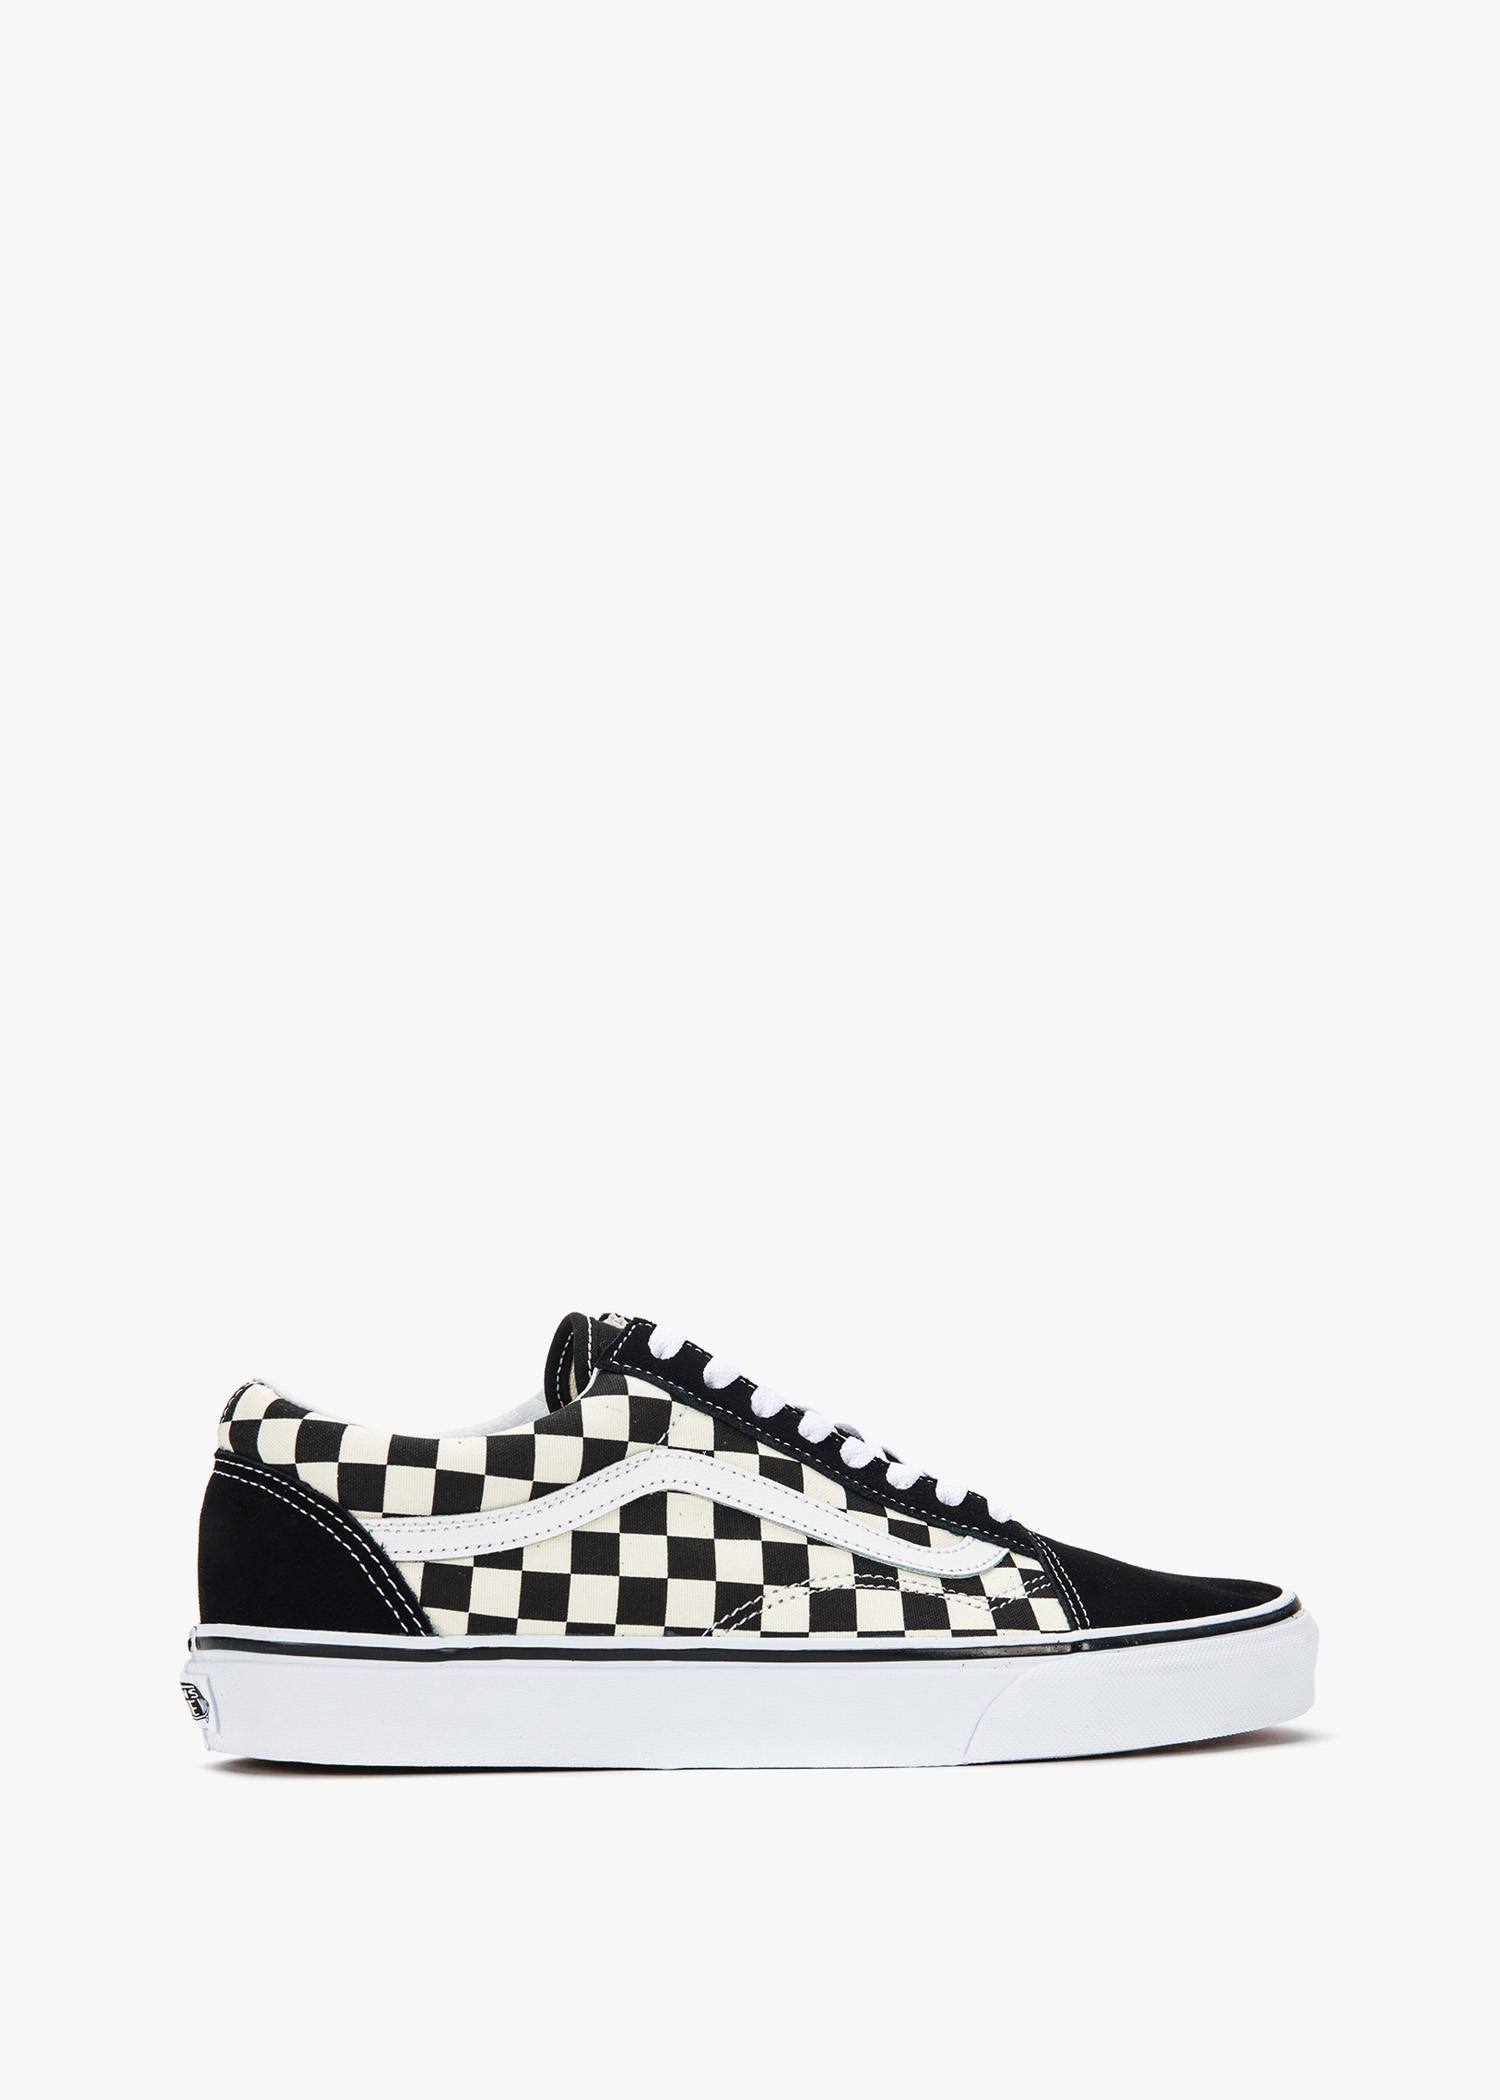 Old Skool 36Dx Checked Anaheim Factory Sneakers, (Primary Check) Black/White